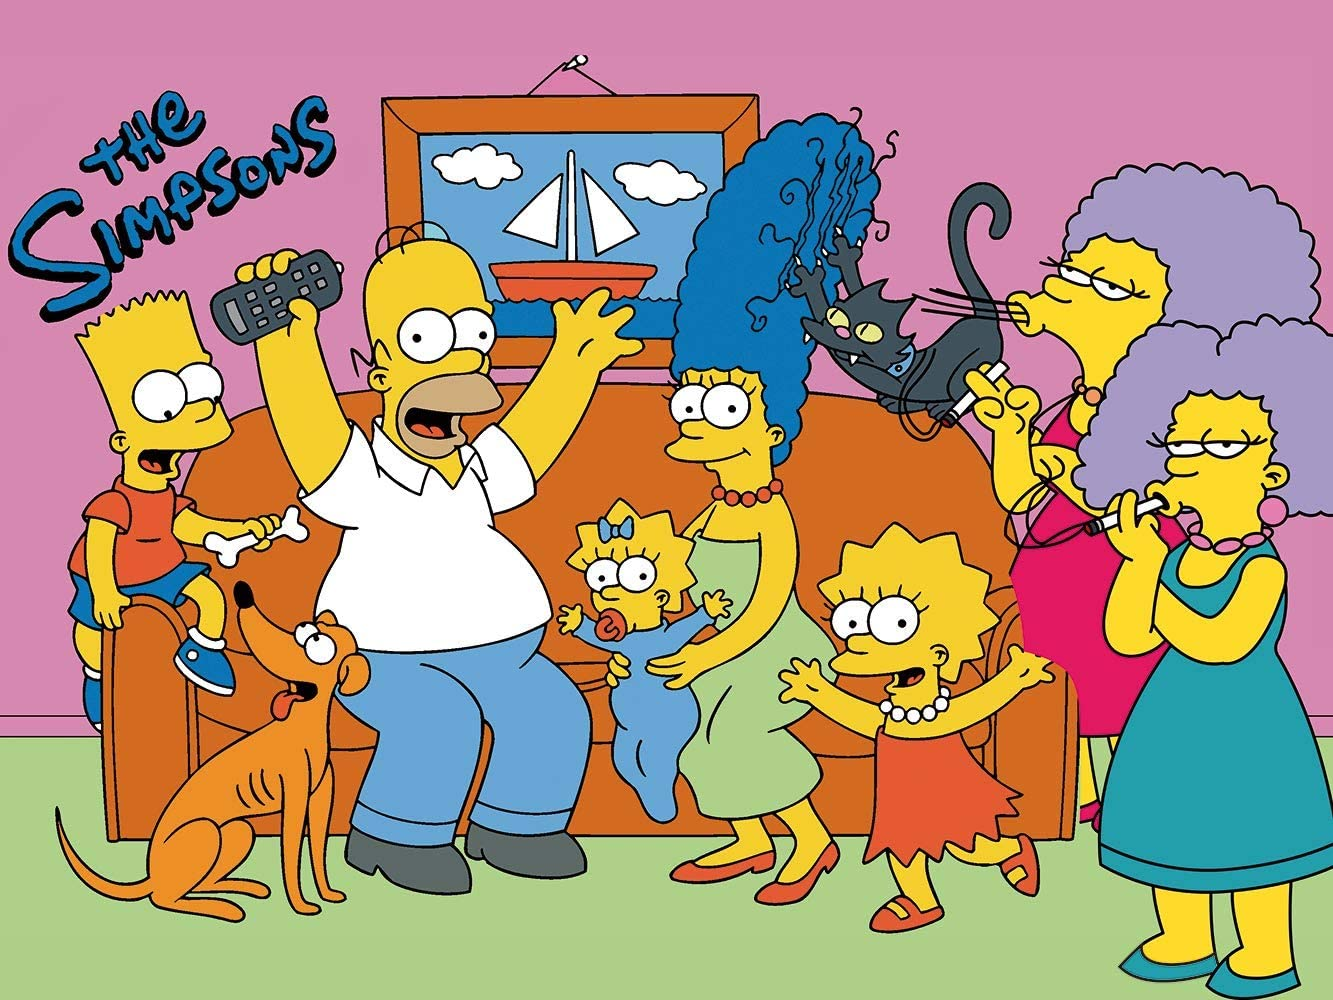 The Simpsons Backdrops Poster Cartoon Funny Family Donut Baby Shower Backgrounds for Birthday Party Photography Background Newborn Photo Studio Booth